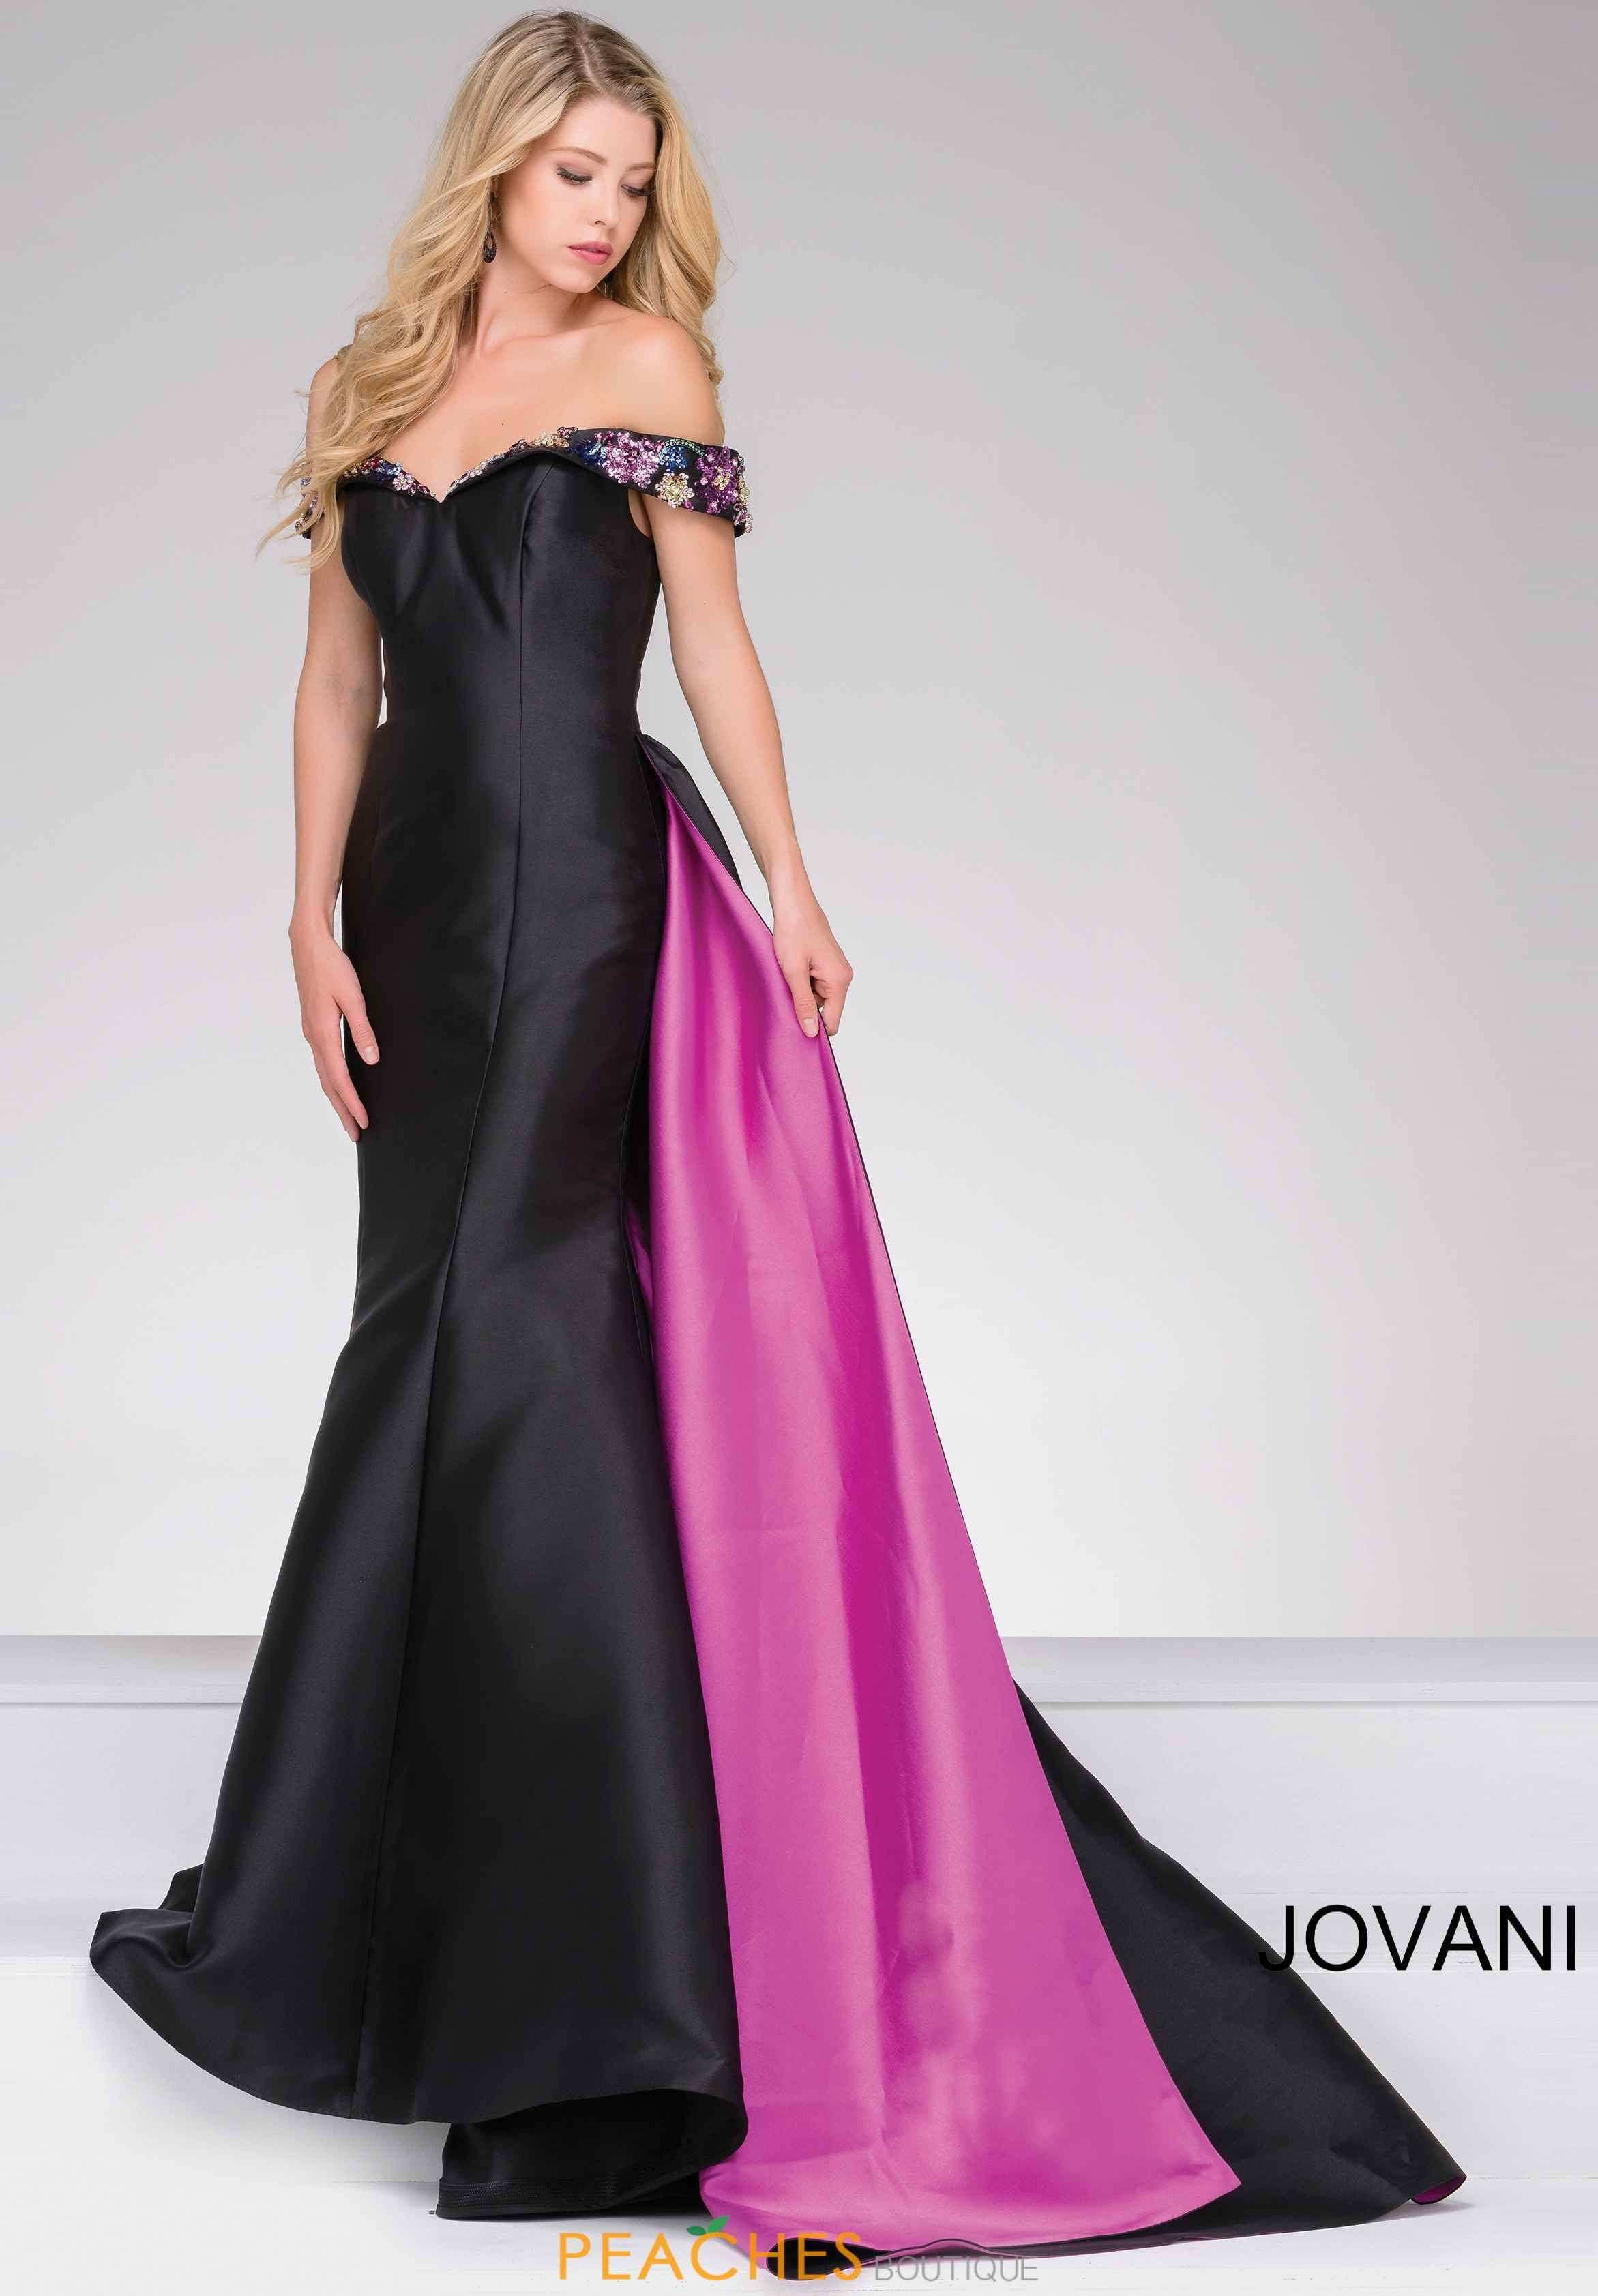 Jovani Full Figured Taffeta Dress 48747 | Pageant Perfection | Pinterest